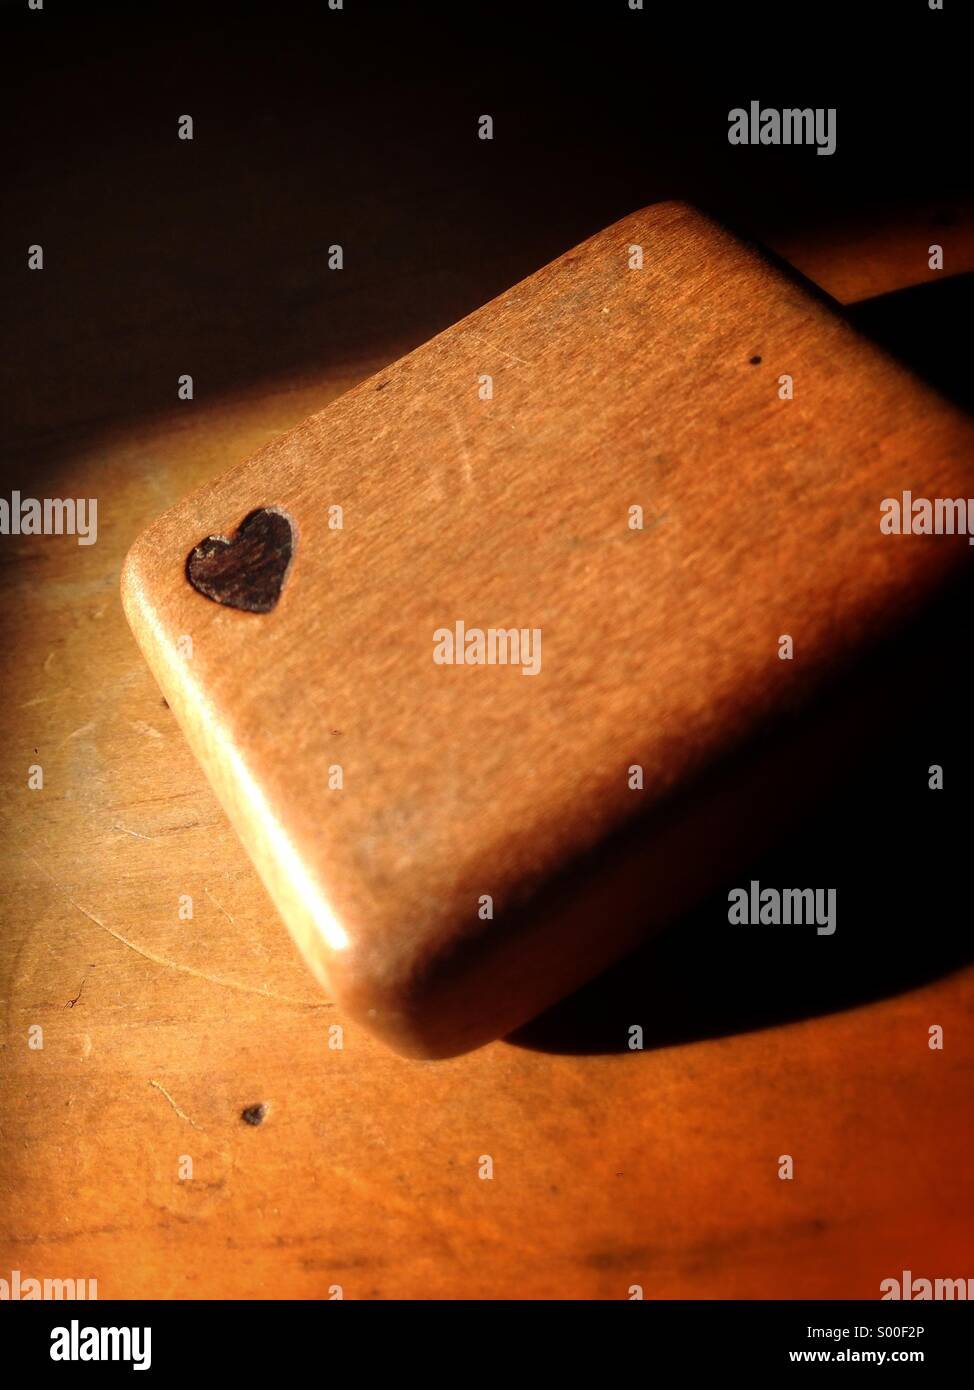 Small wooden box with a heart burned into it. Stock Photo